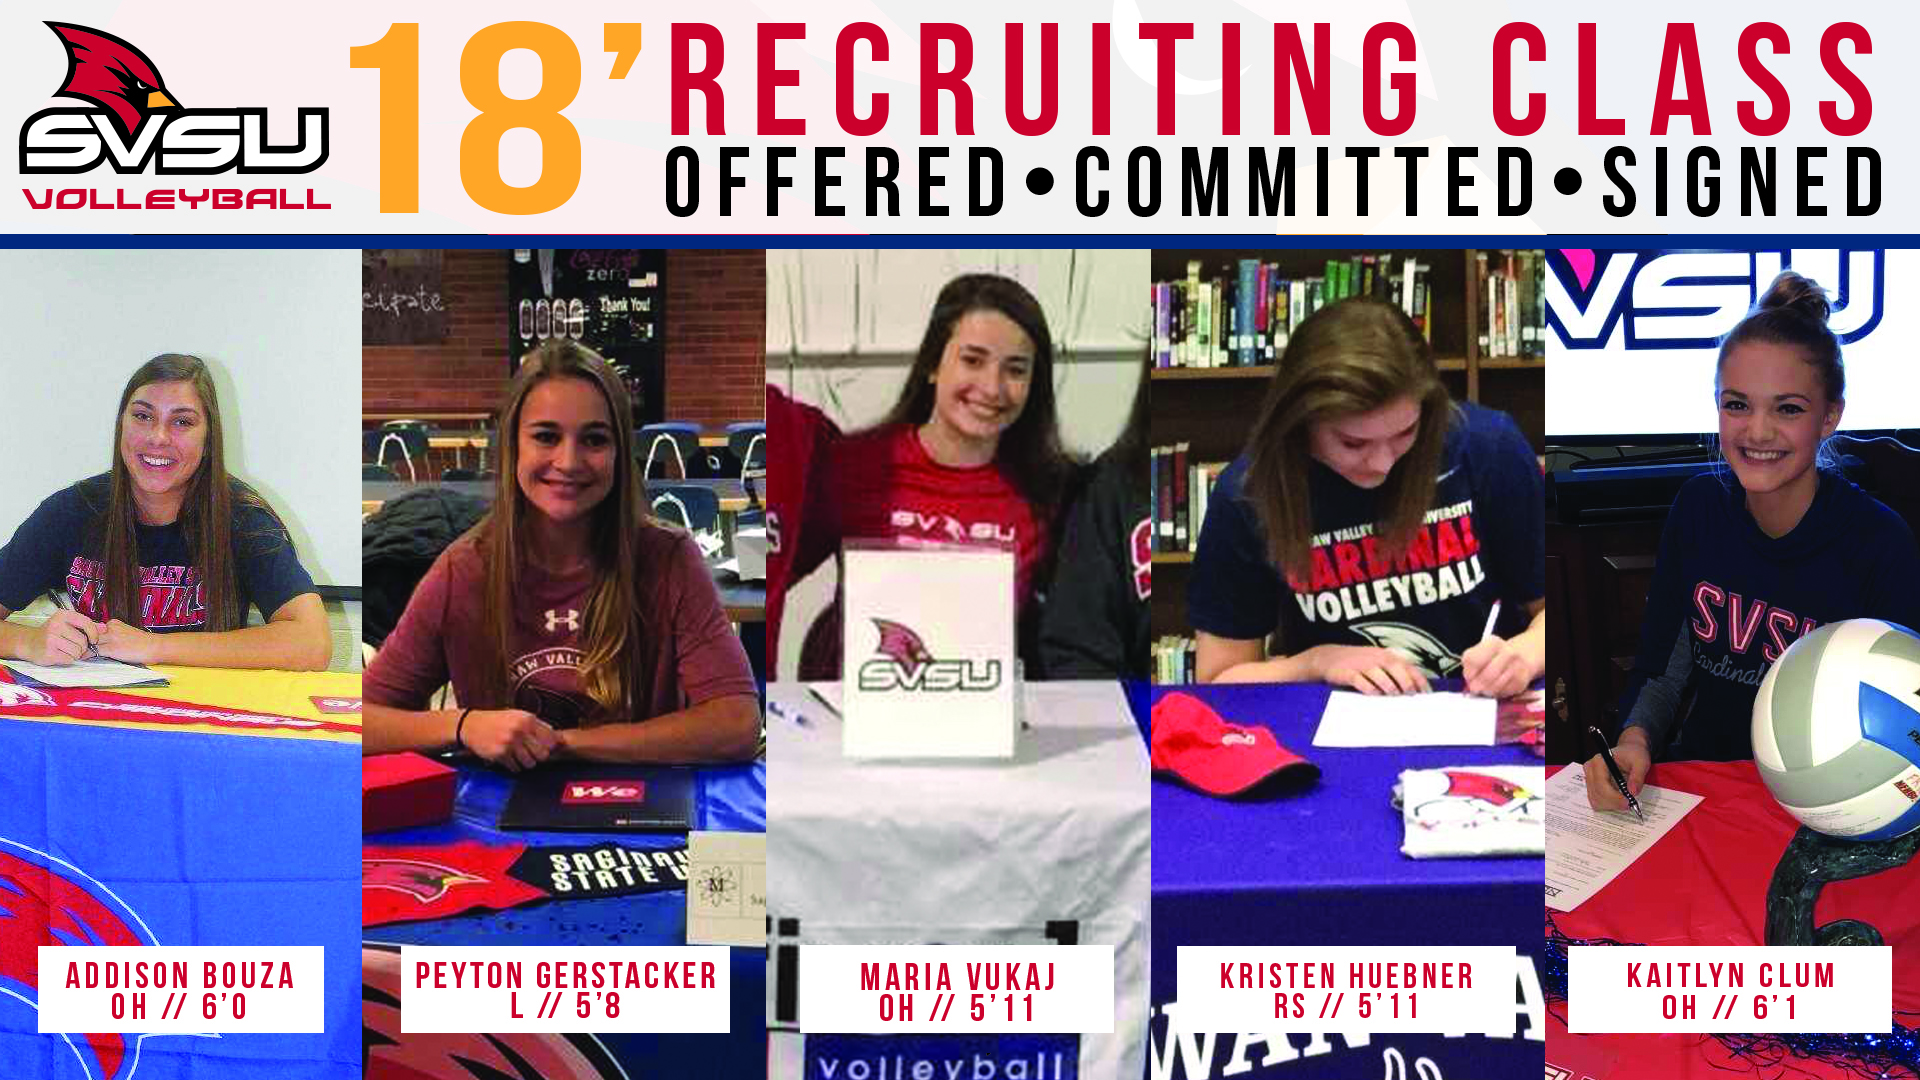 SVSU Volleyball Signs Five To 2018 Recruiting Class